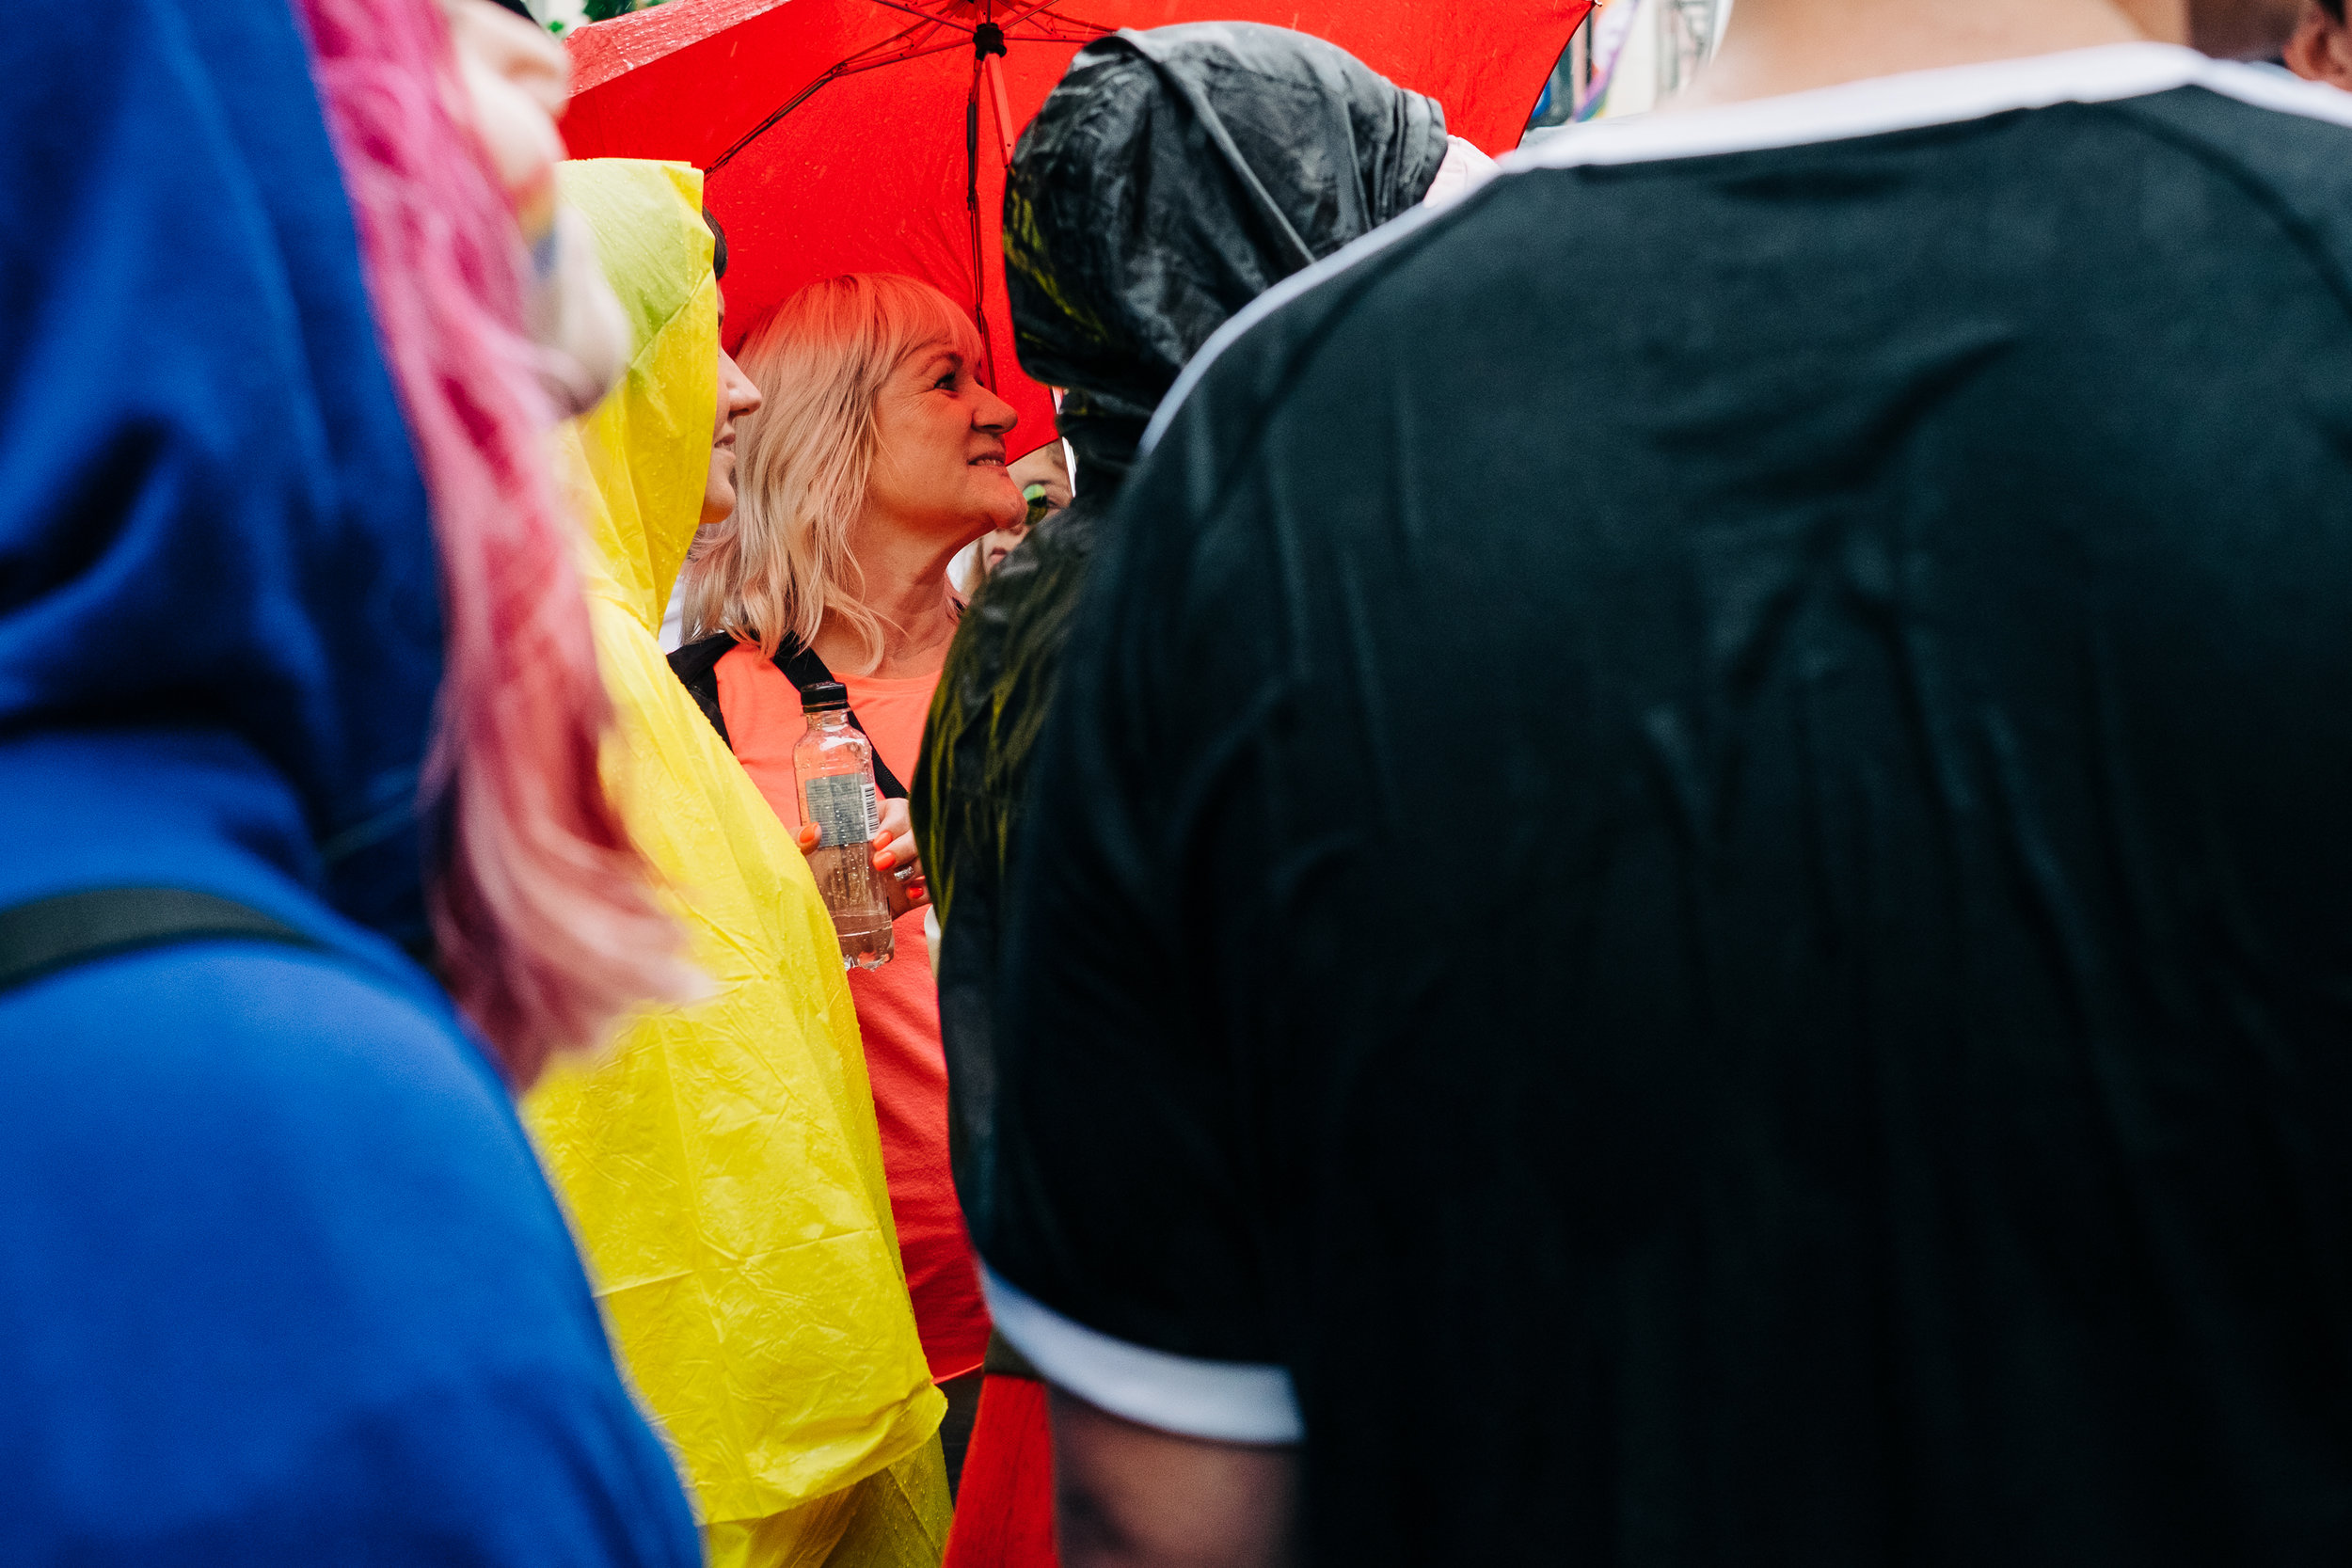 Prague Pride 2019 (38 of 47).jpg